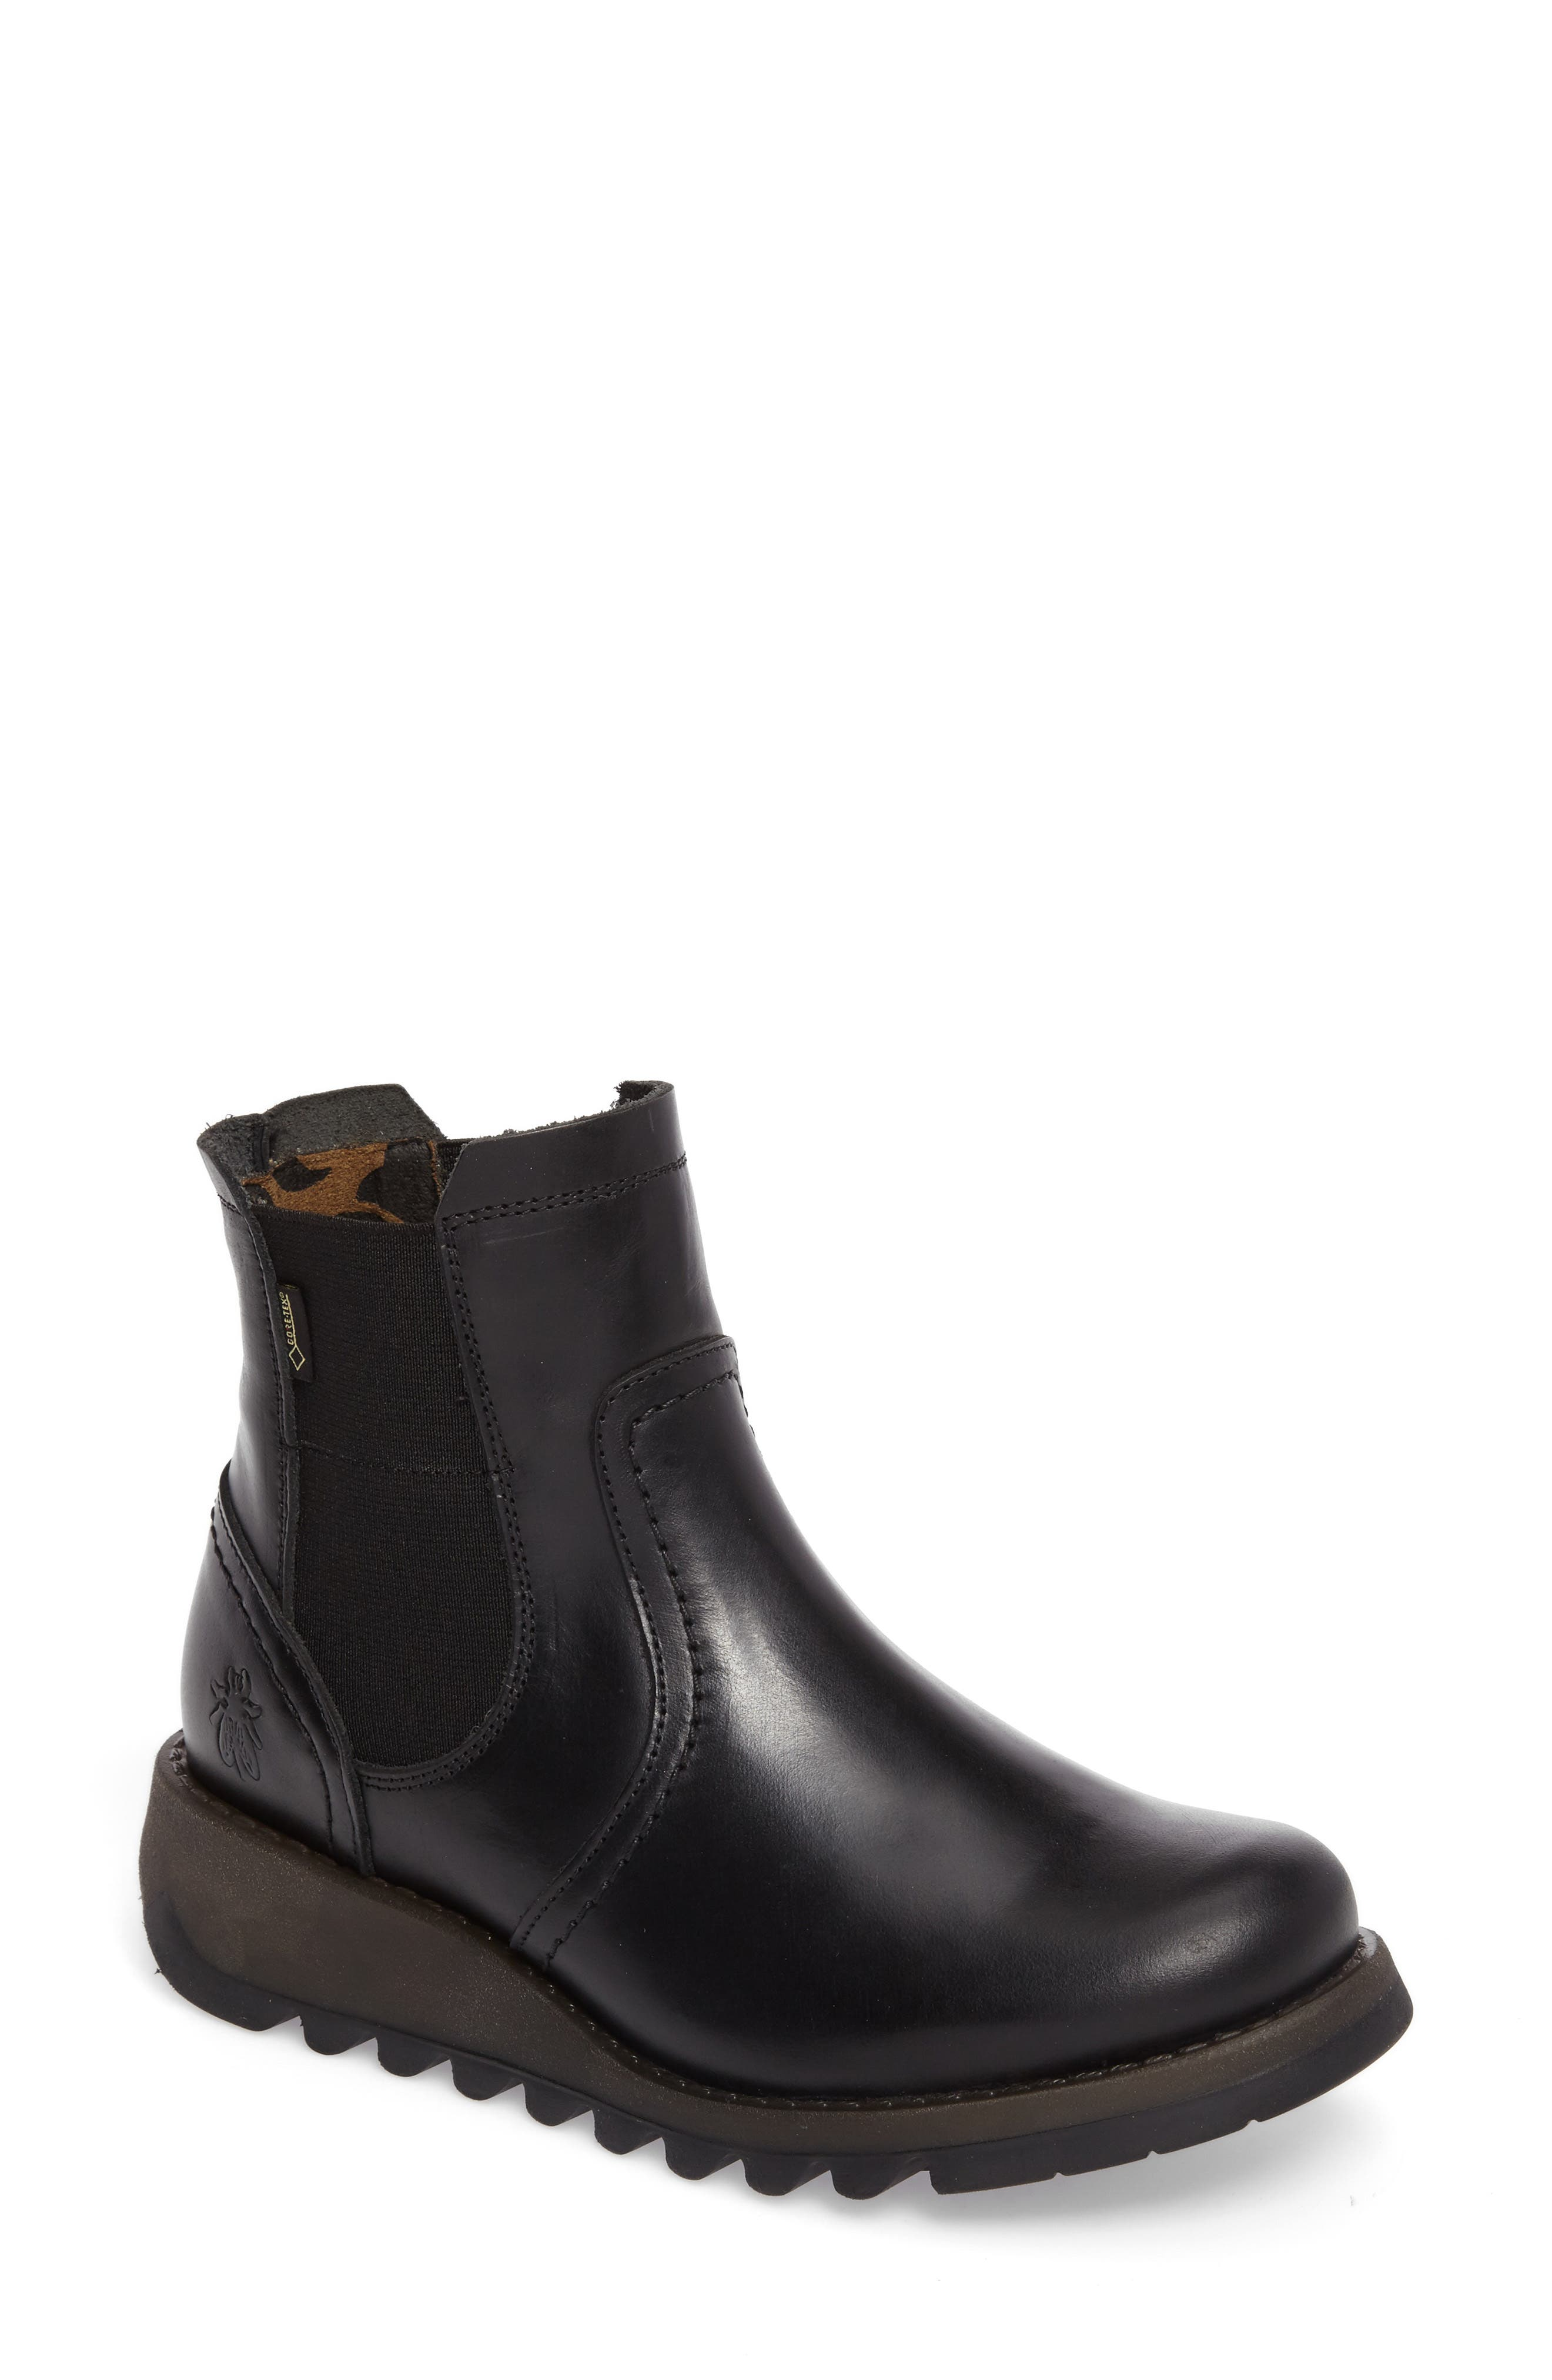 Scon Waterproof Gore-Tex<sup>®</sup> Chelsea Boot,                             Main thumbnail 1, color,                             BLACK LEATHER